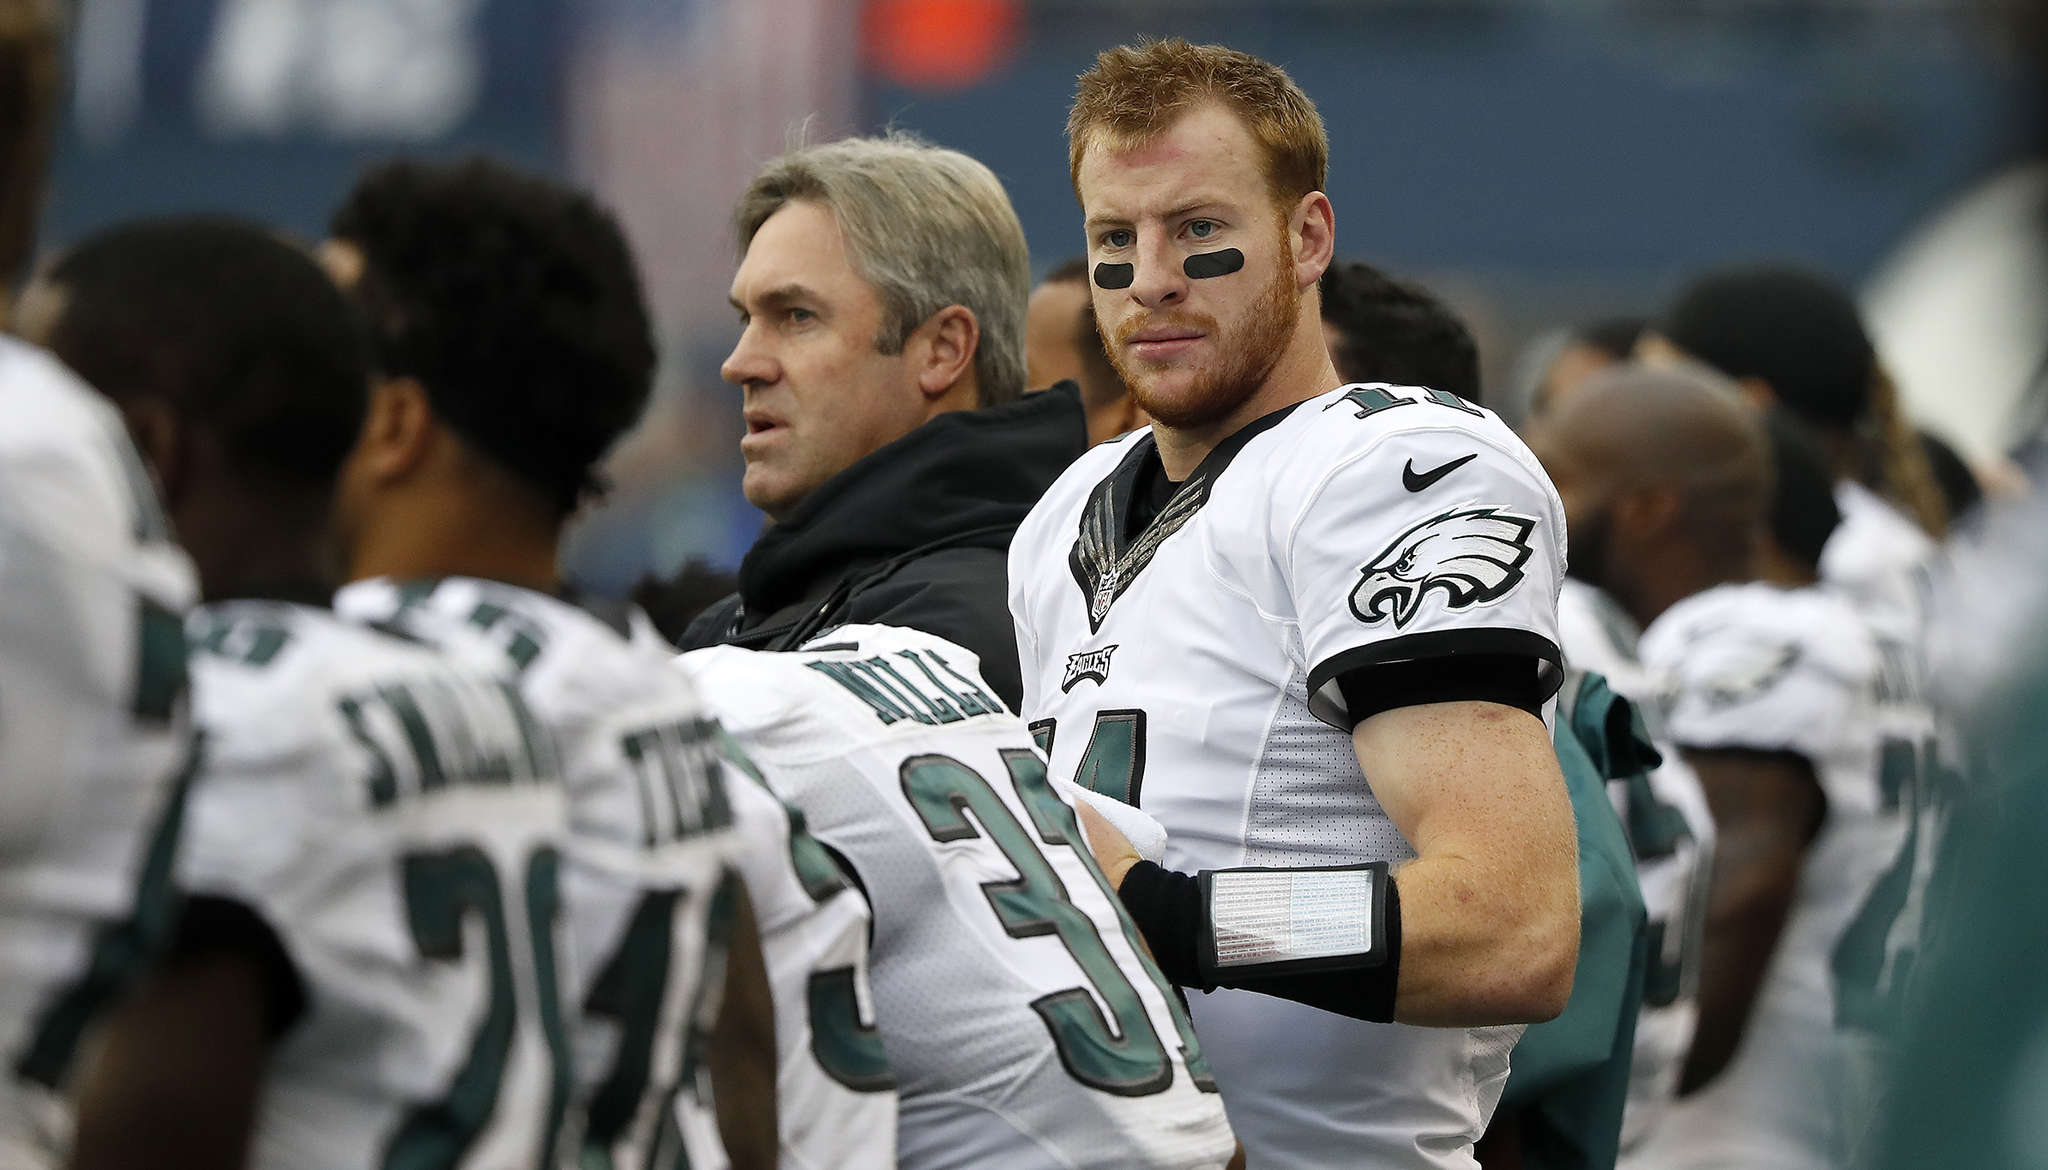 Carson Wentz´s stats have gone down but praise remains high for him around the league.